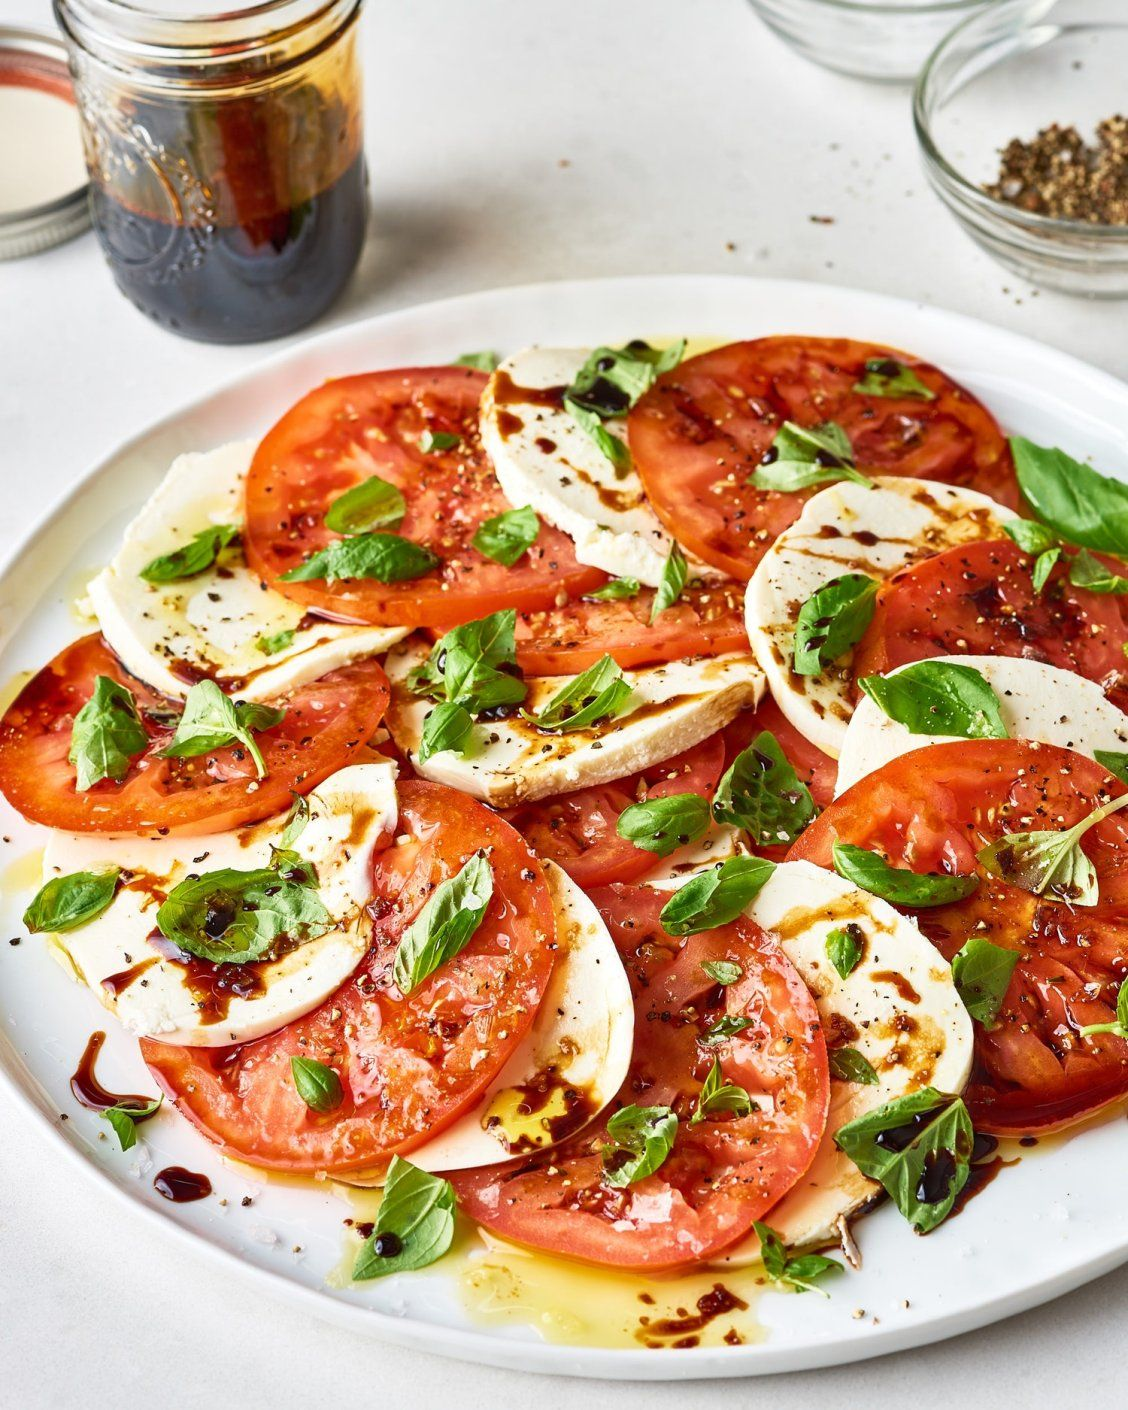 How To Make Easy Caprese Salad With Balsamic Glaze Recipe Caprese Salad Recipe Tomato Recipes Healthy Dinner Salads